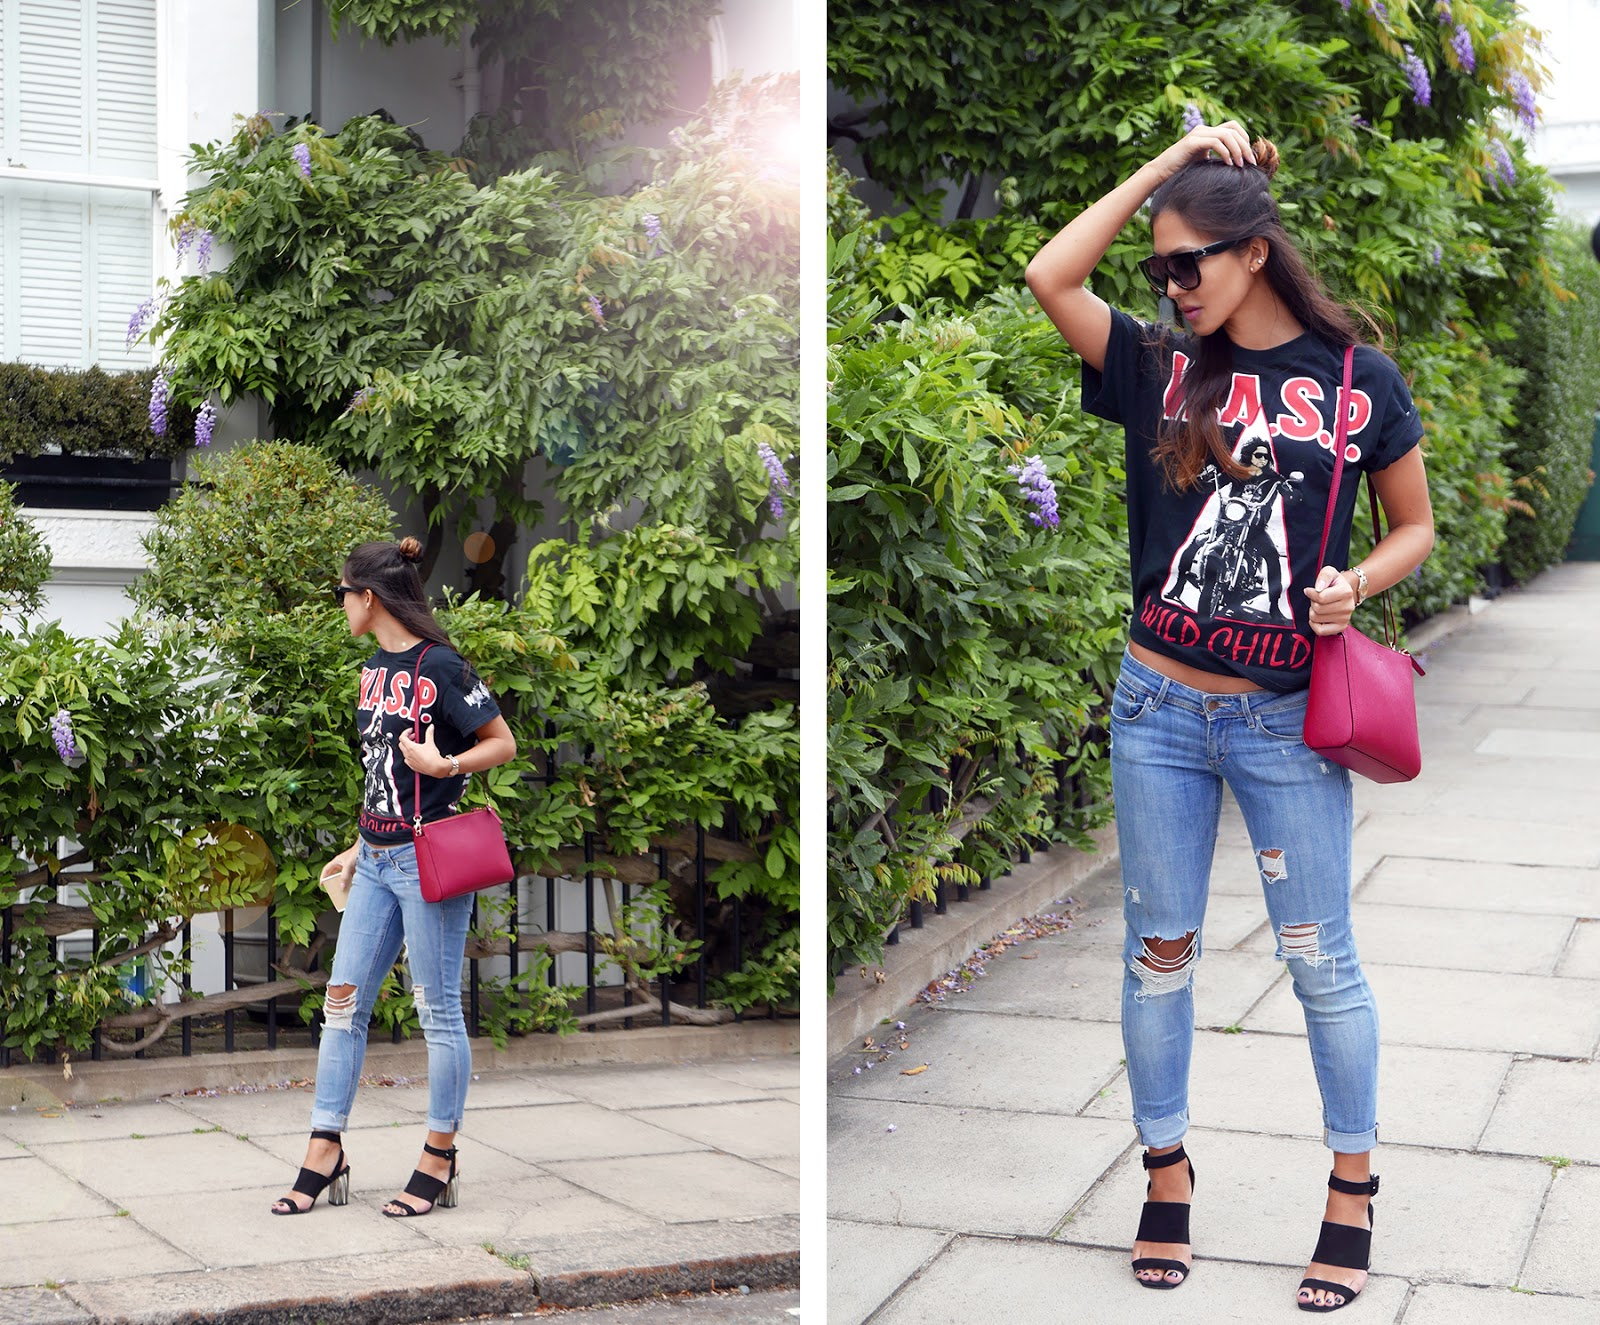 Euriental | fashion & luxury travel | WASP tshirt, Lo & Sons bag, Topshop heels